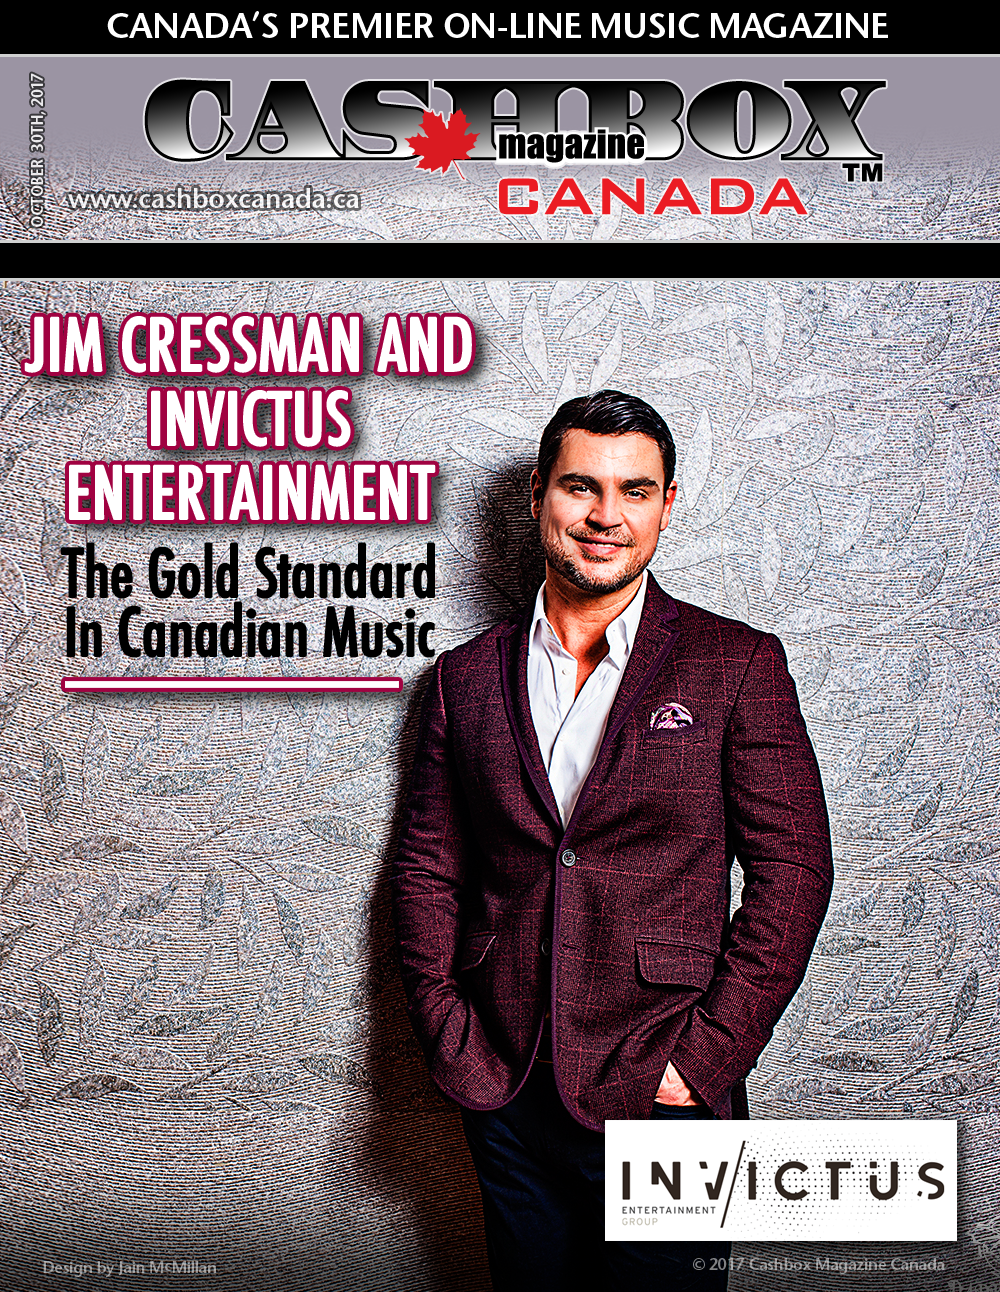 Jim Cressman and Invictus Entertainment Group The Gold Standard